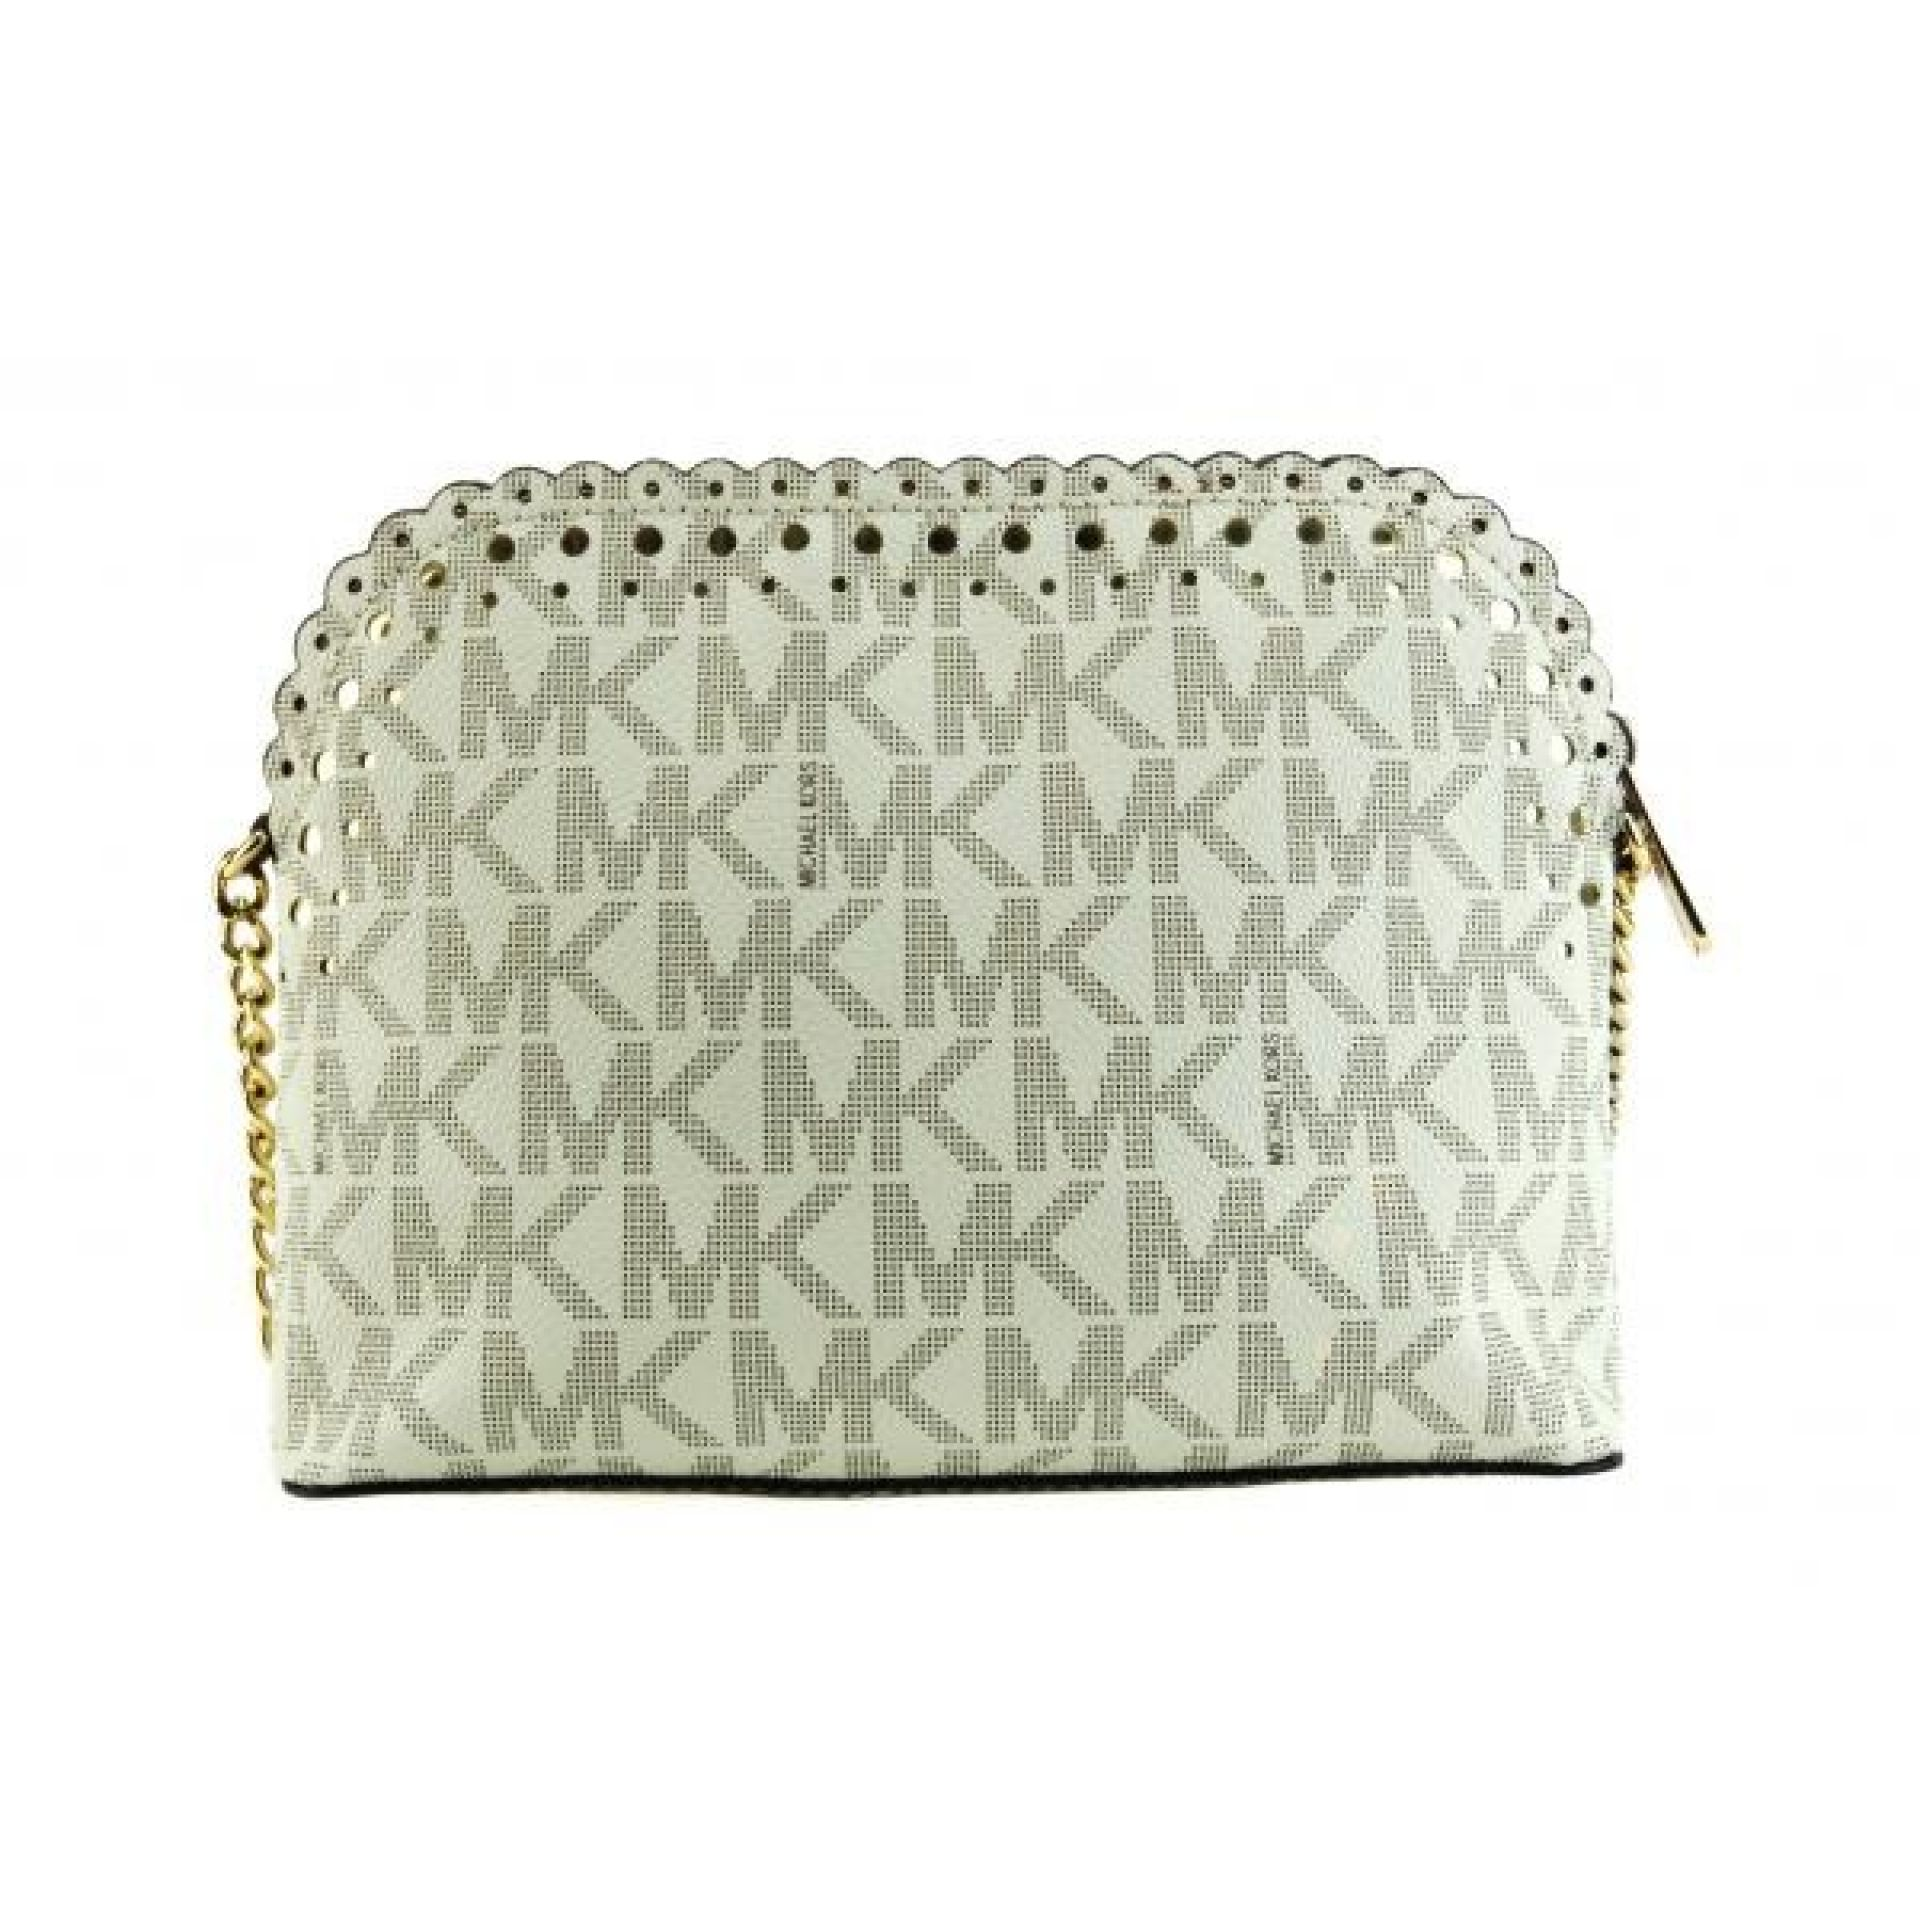 MICHAEL Michael Kors Ivory Signature Coated Canvas Cindy Scalloped Crossbody Bag